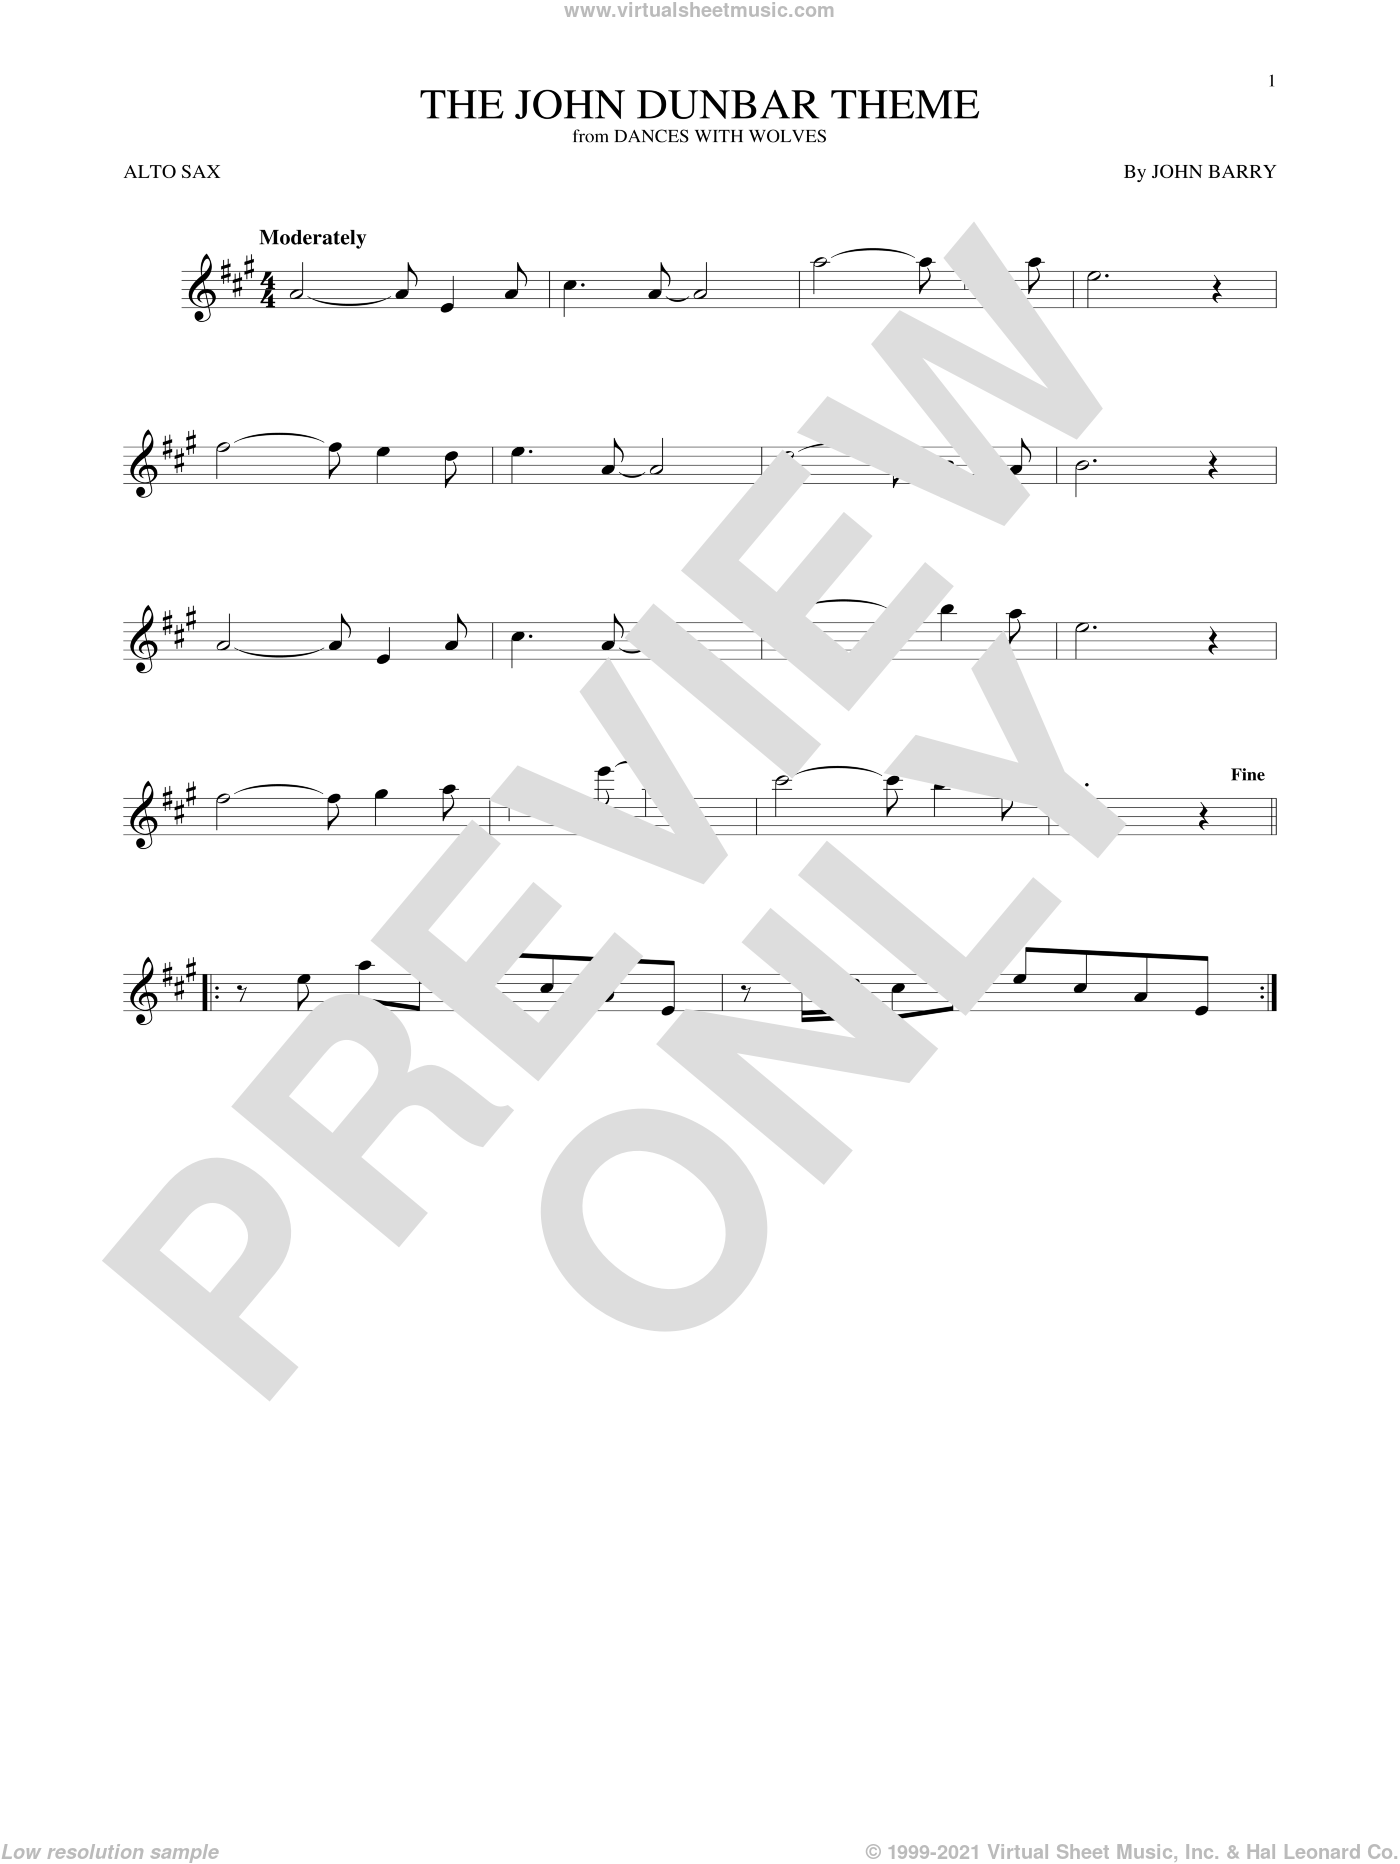 The John Dunbar Theme sheet music for alto saxophone solo by John Barry, intermediate skill level